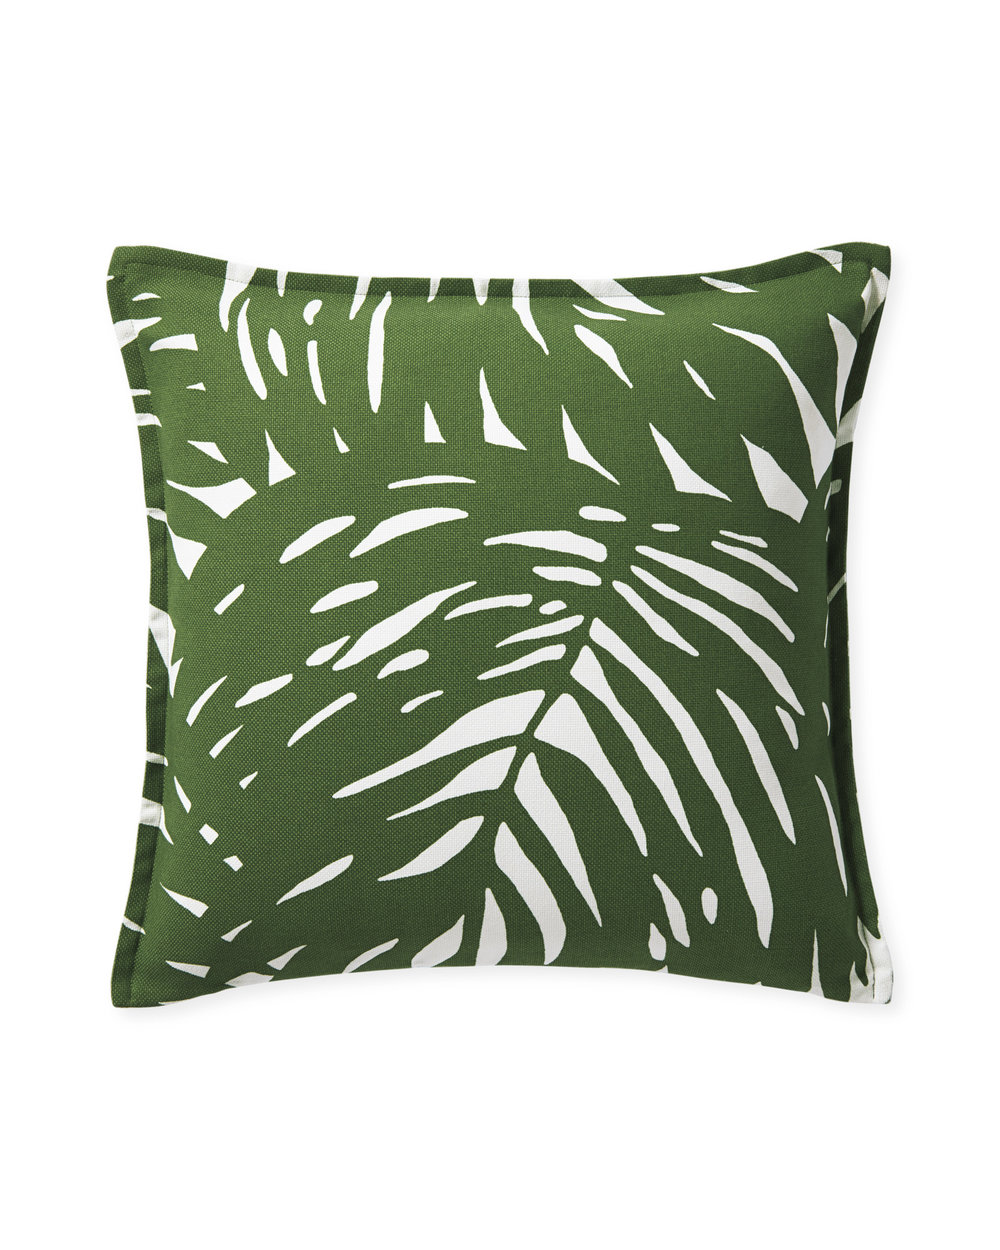 Dec_Pillow_Outdoor_Palm_Green_MV_0093_Crop_SH.jpg